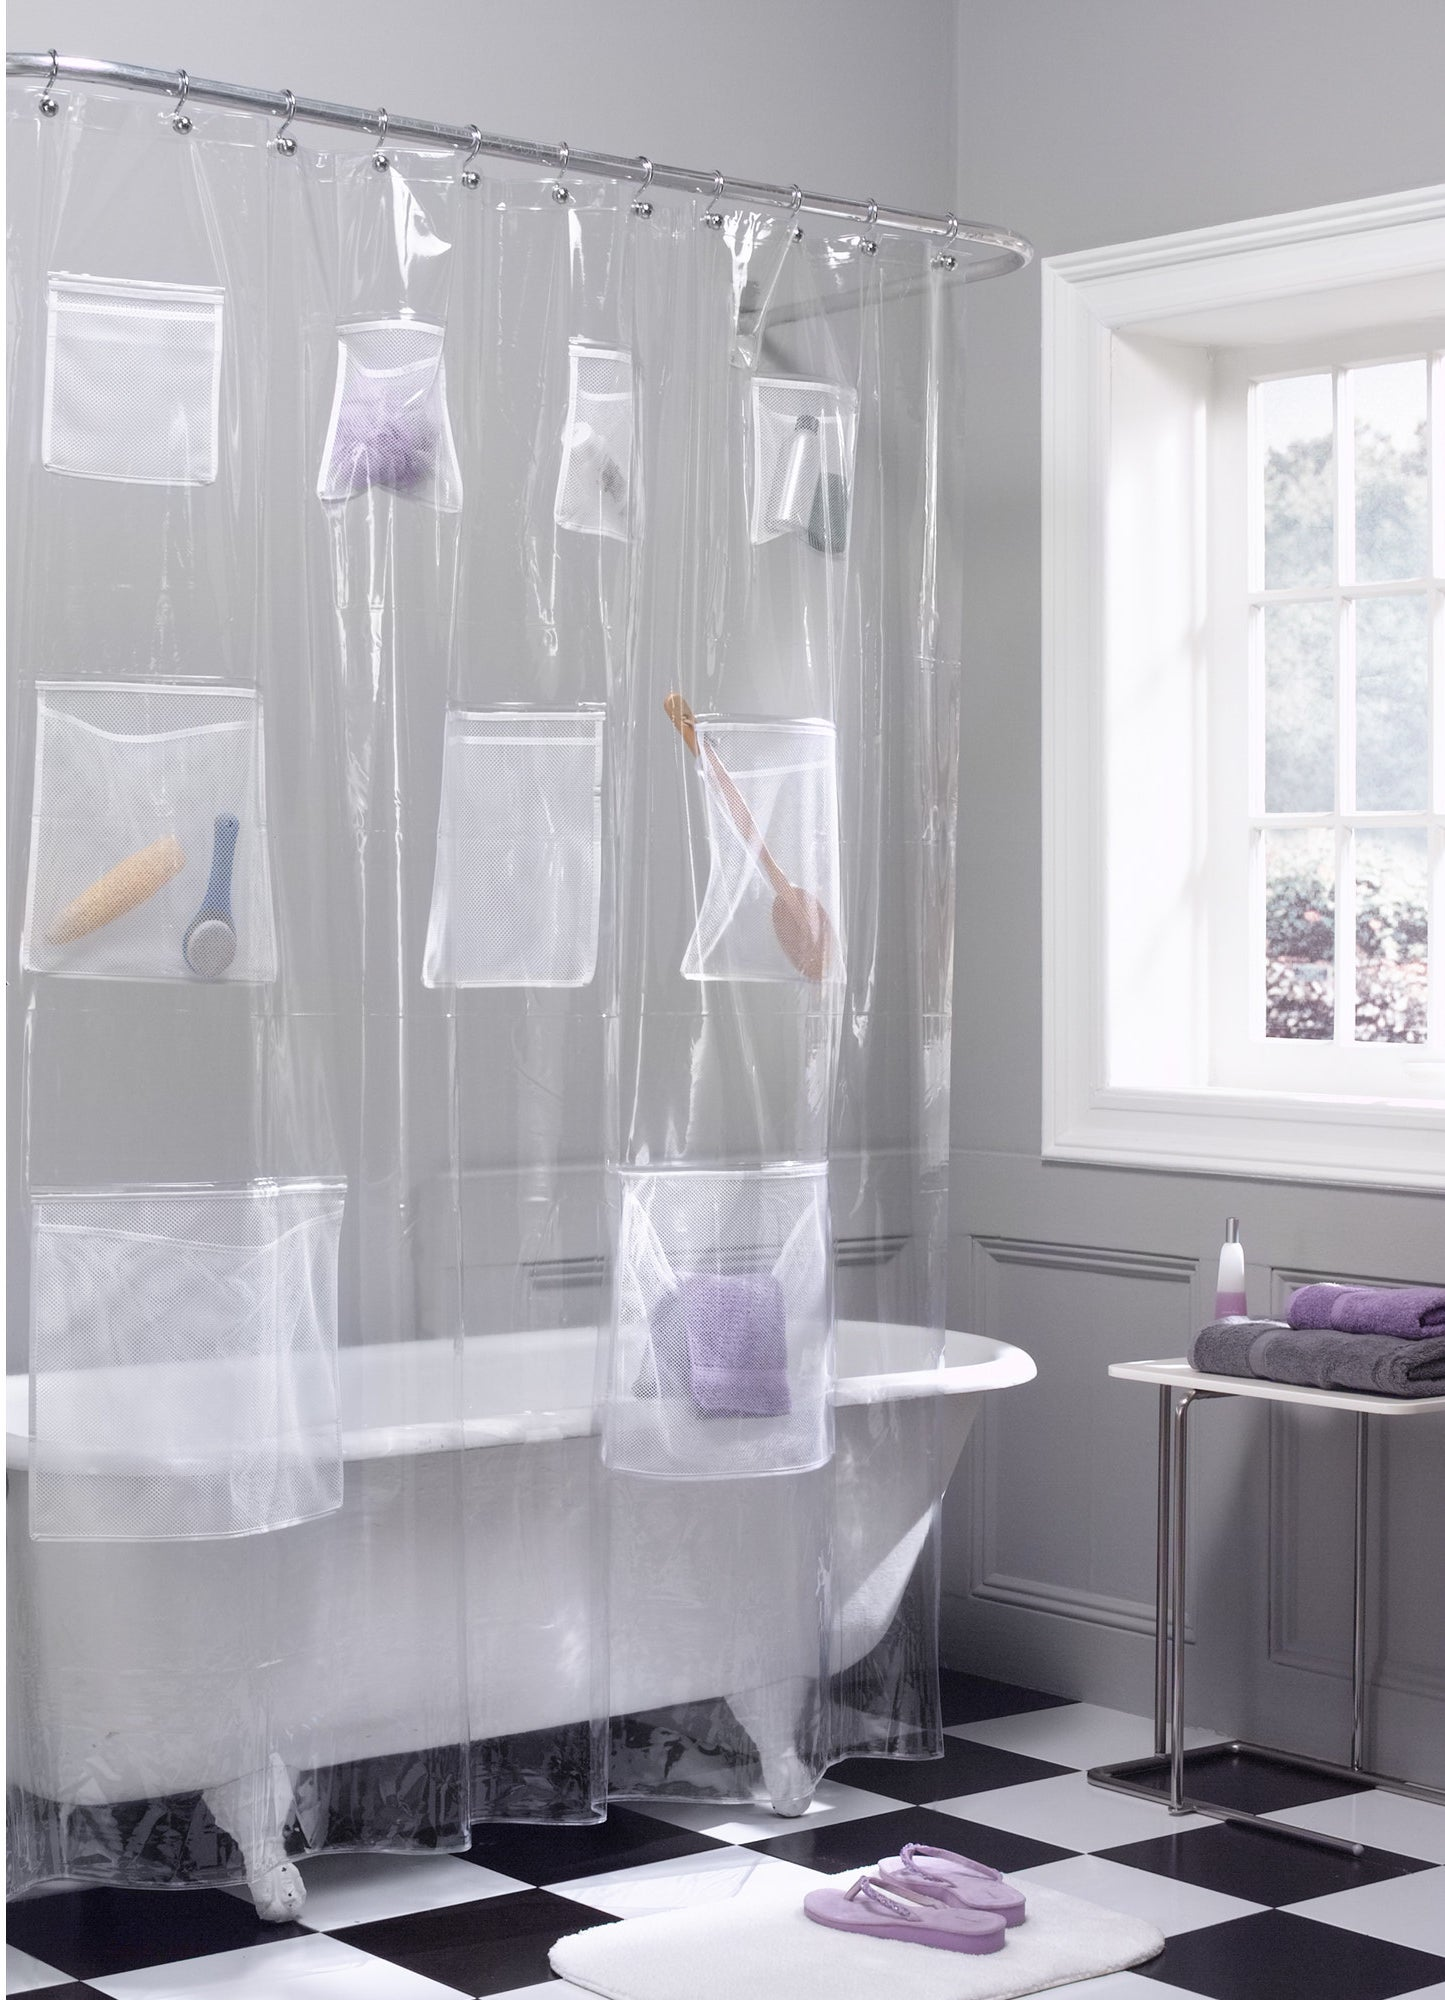 clear shower curtain with mesh pockets in a bathroom